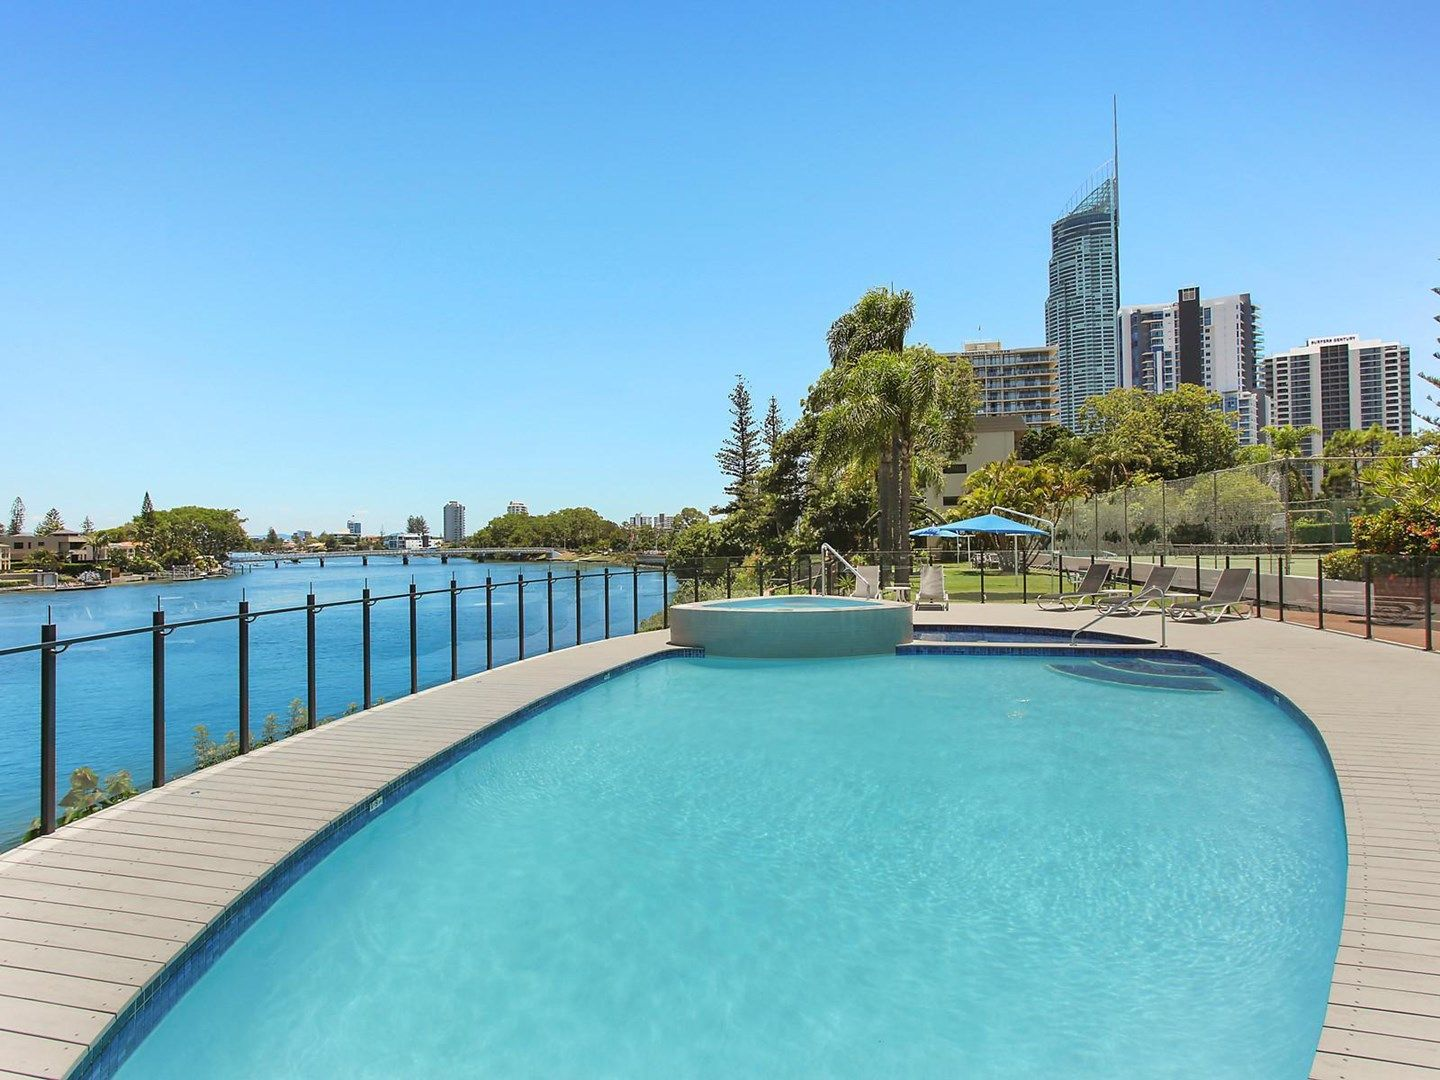 77/2940 Gold Coast Highway, Broadbeach QLD 4218, Image 0